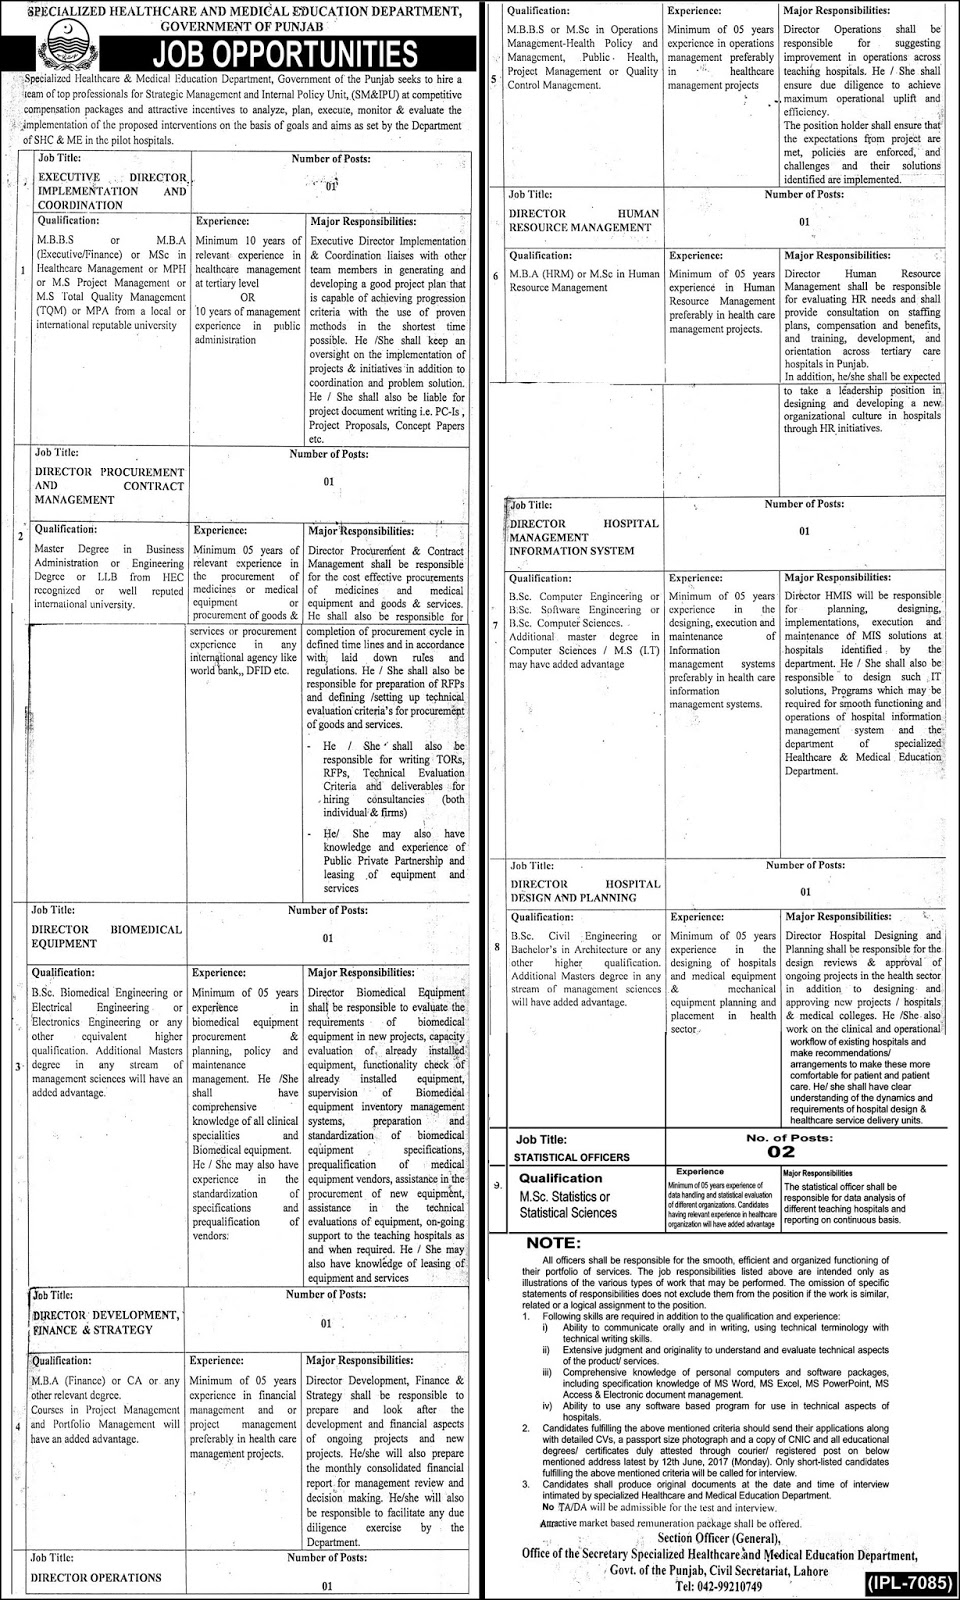 Different Directors Jobs Specialized Healthcare And Medical Education Department Govt 31 May 2017